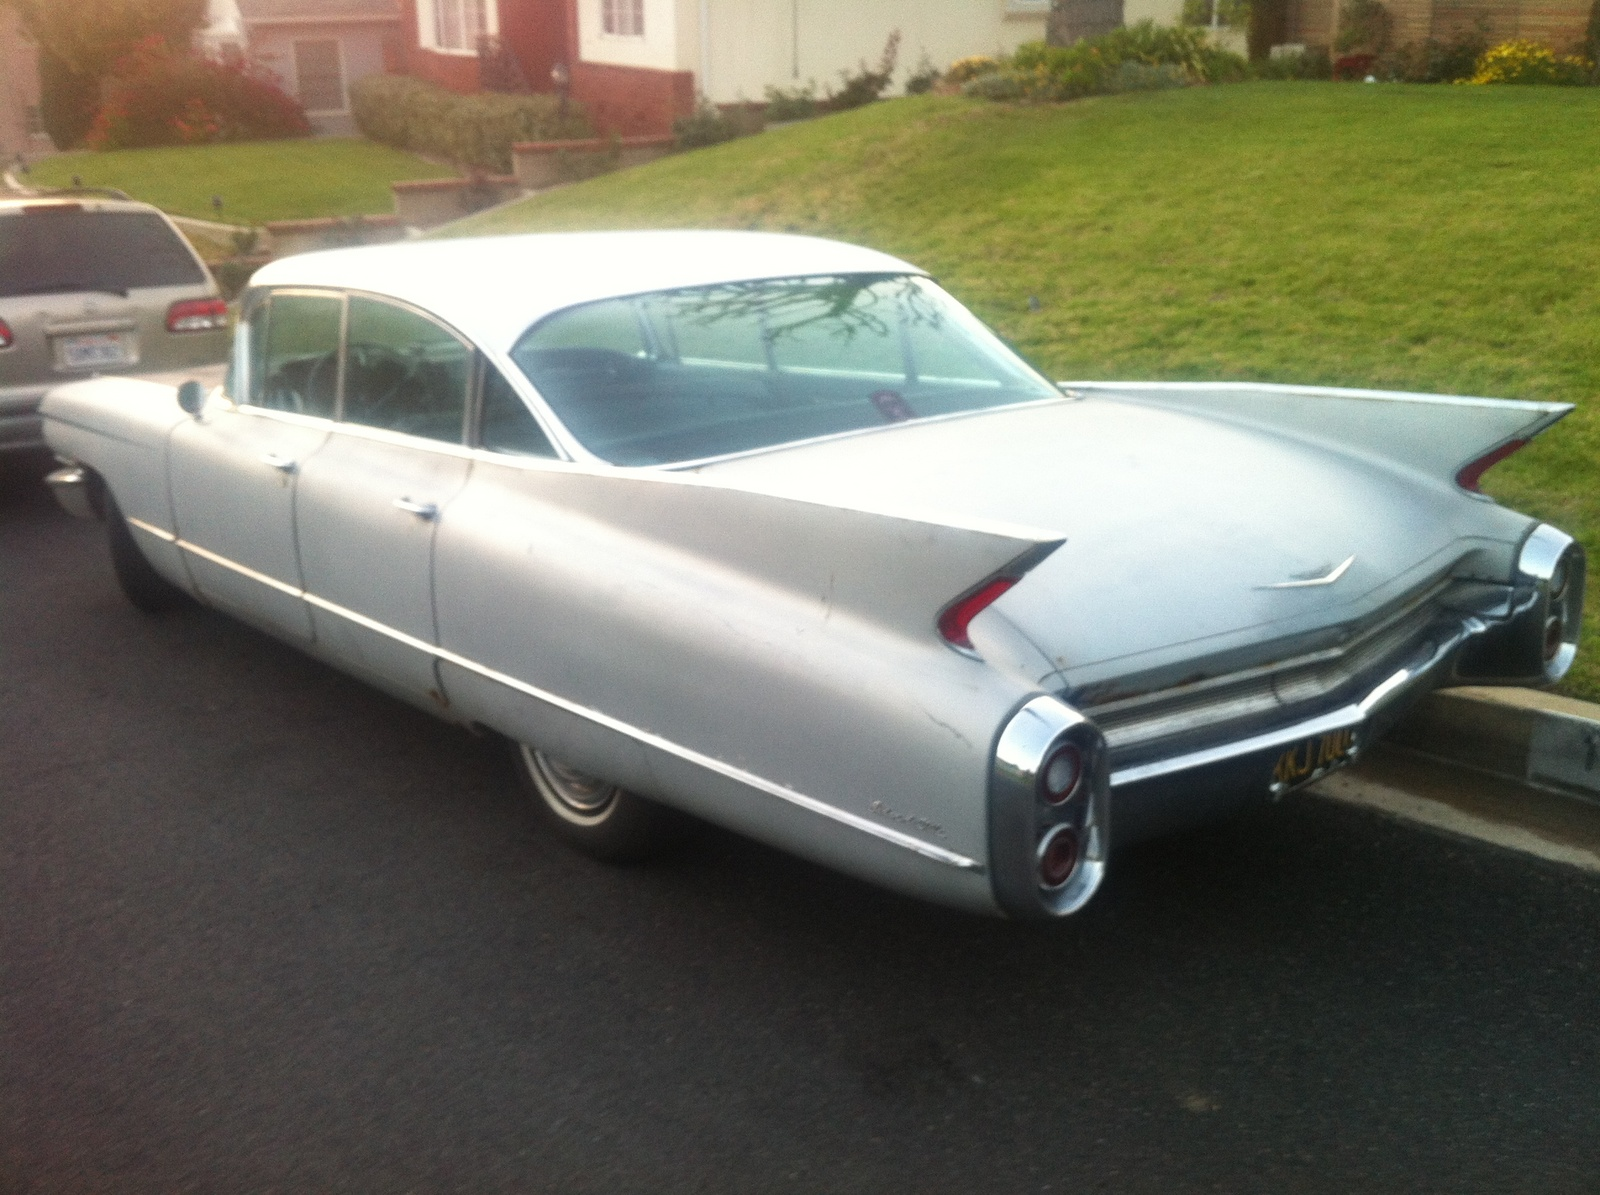 1960 cadillac sixty special pic 5446768468546021119 jpeg